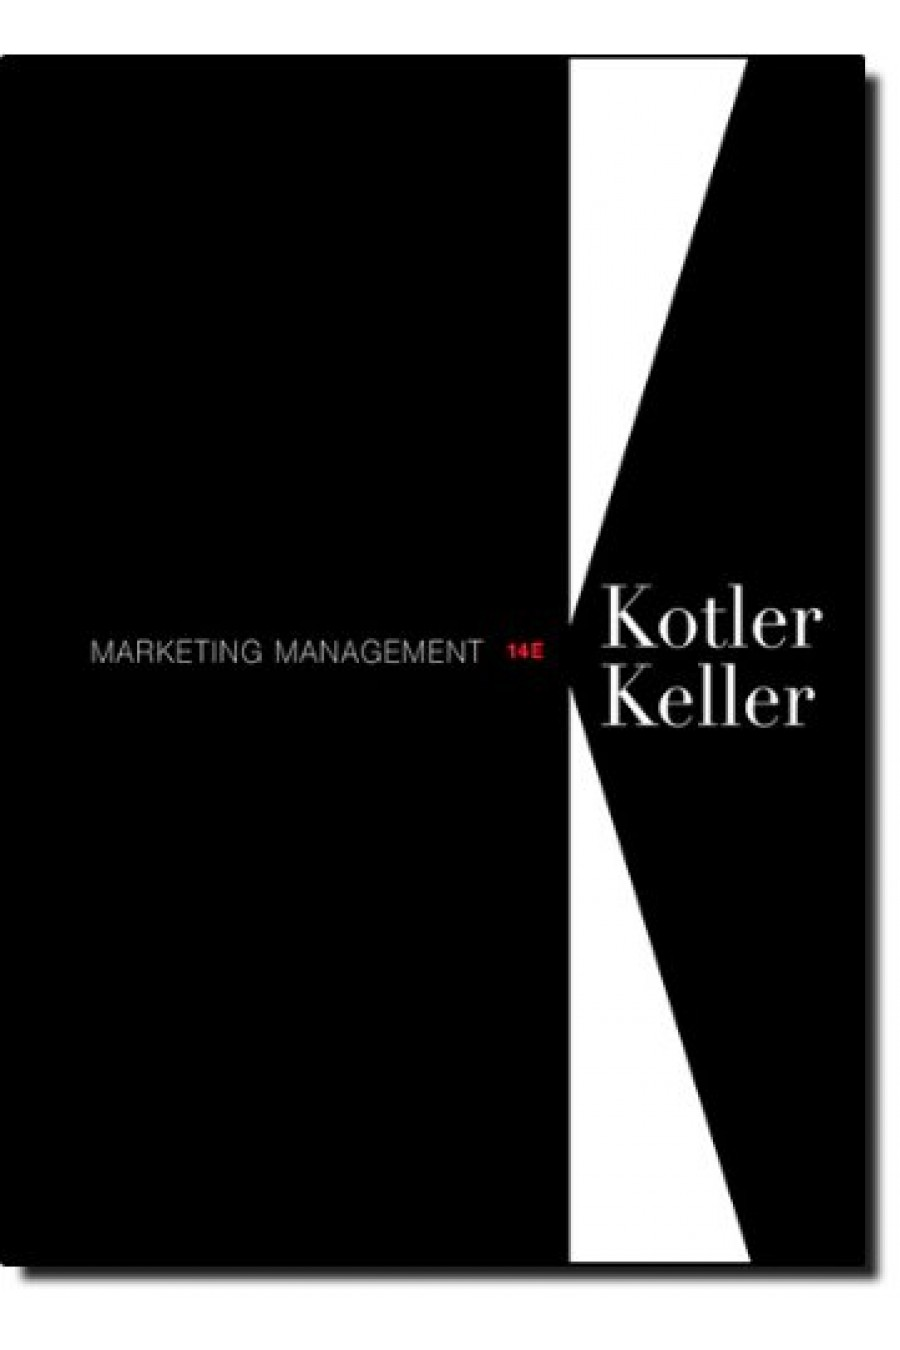 kotler and keller chapter fourteen questions 9780132102926 isbn-13: 0132102927 isbn: philip kotler, kevin keller authors: rent | buy alternate isbn: 9780131394933, 9780131394957 chapter 14 chapter 15 chapter 16 chapter 17 chapter 18 chapter 19 chapter 20 chapter 21 can i get help with questions outside of textbook.